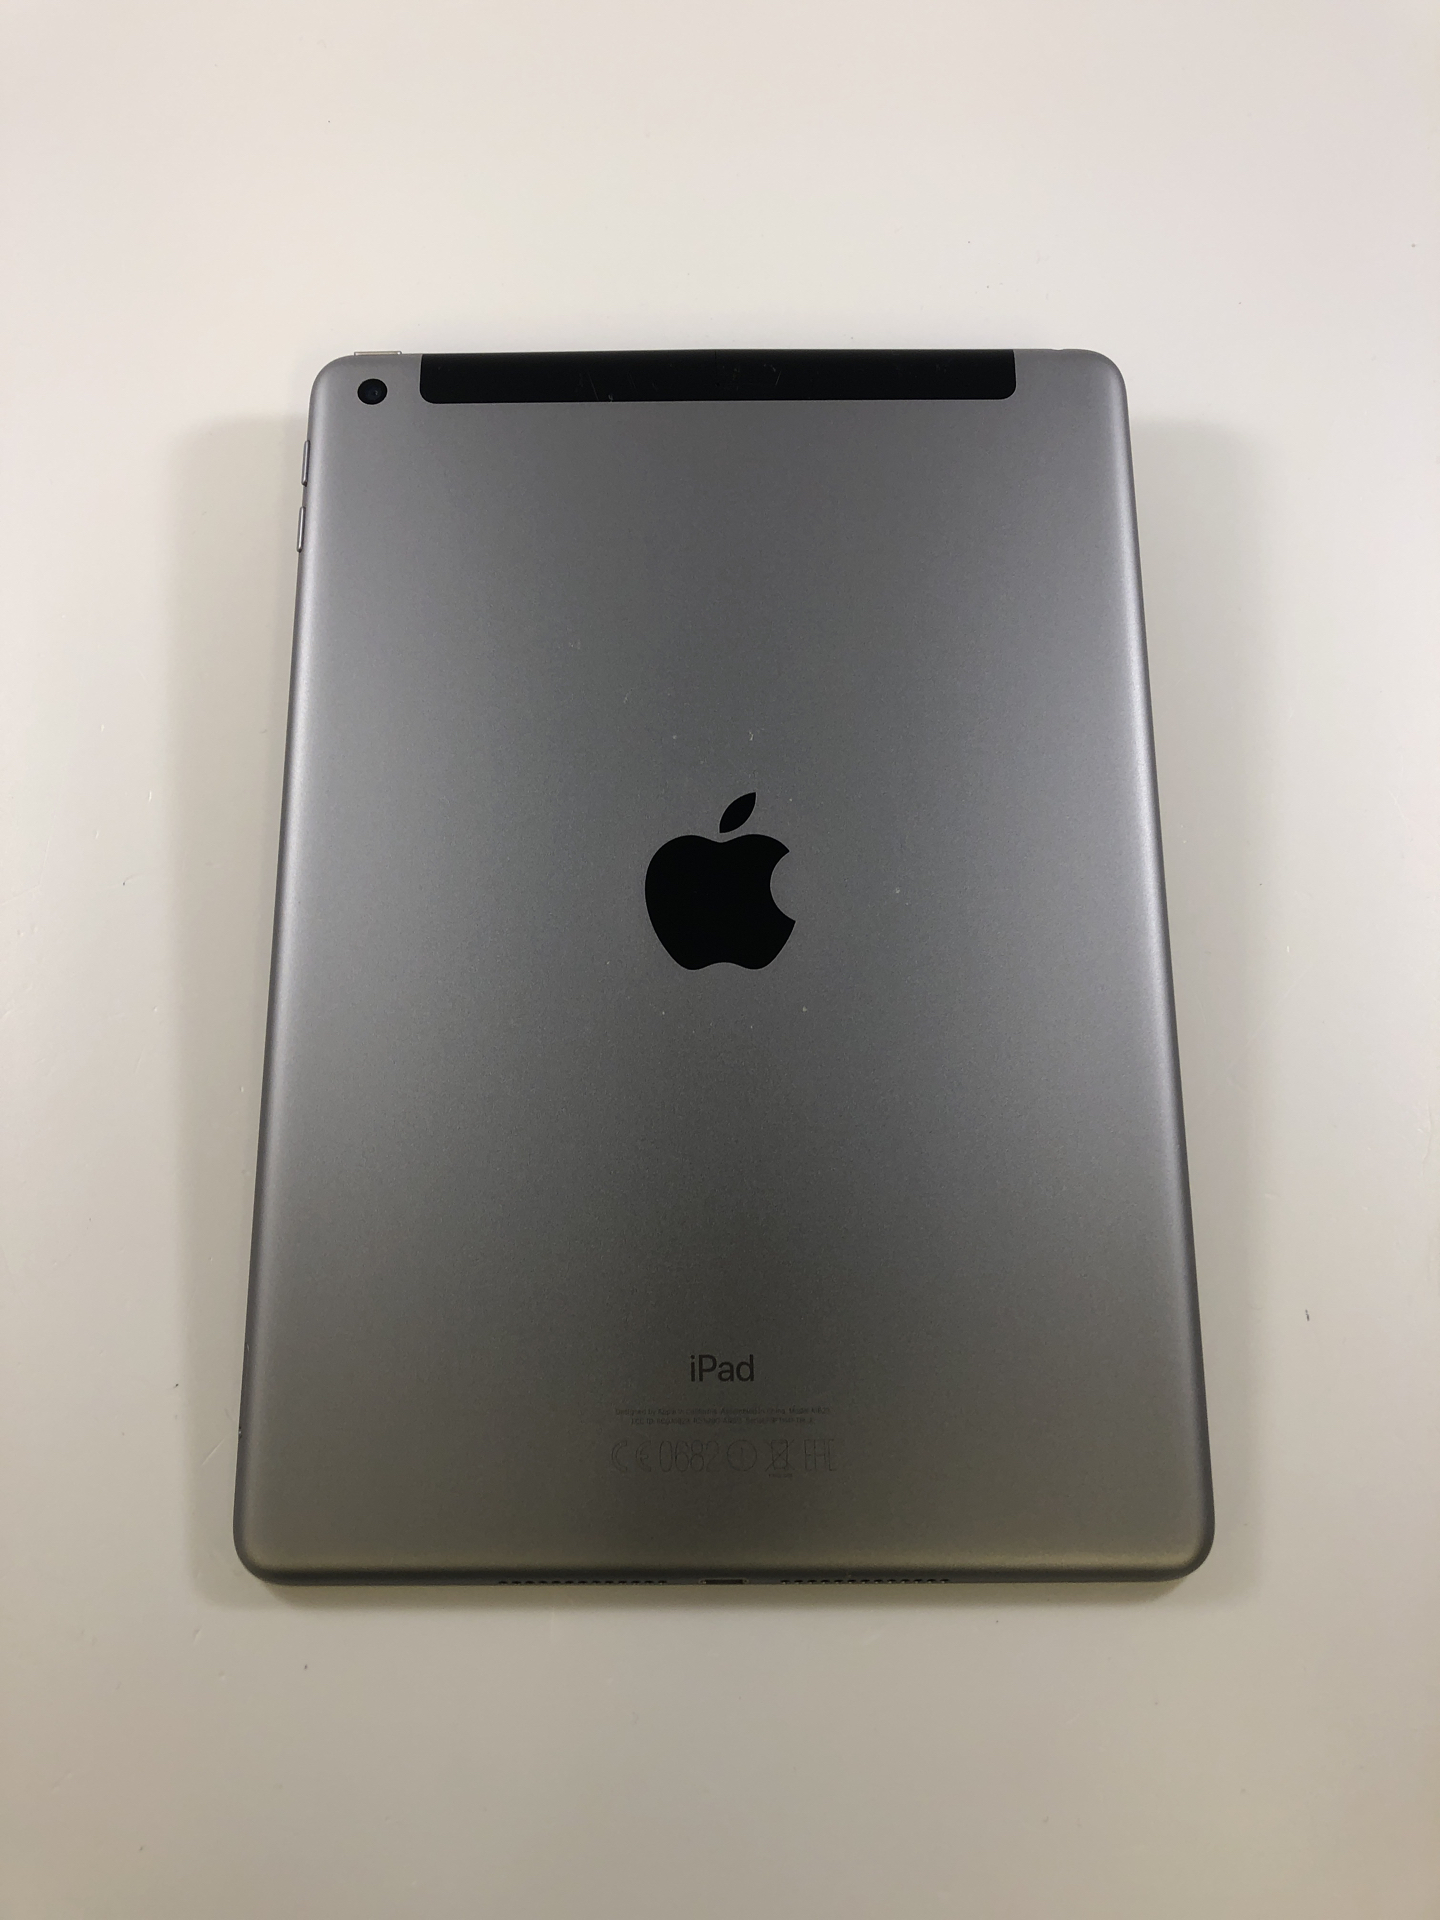 iPad 5 Wi-Fi + Cellular 128GB, 128GB, Space Gray, image 2